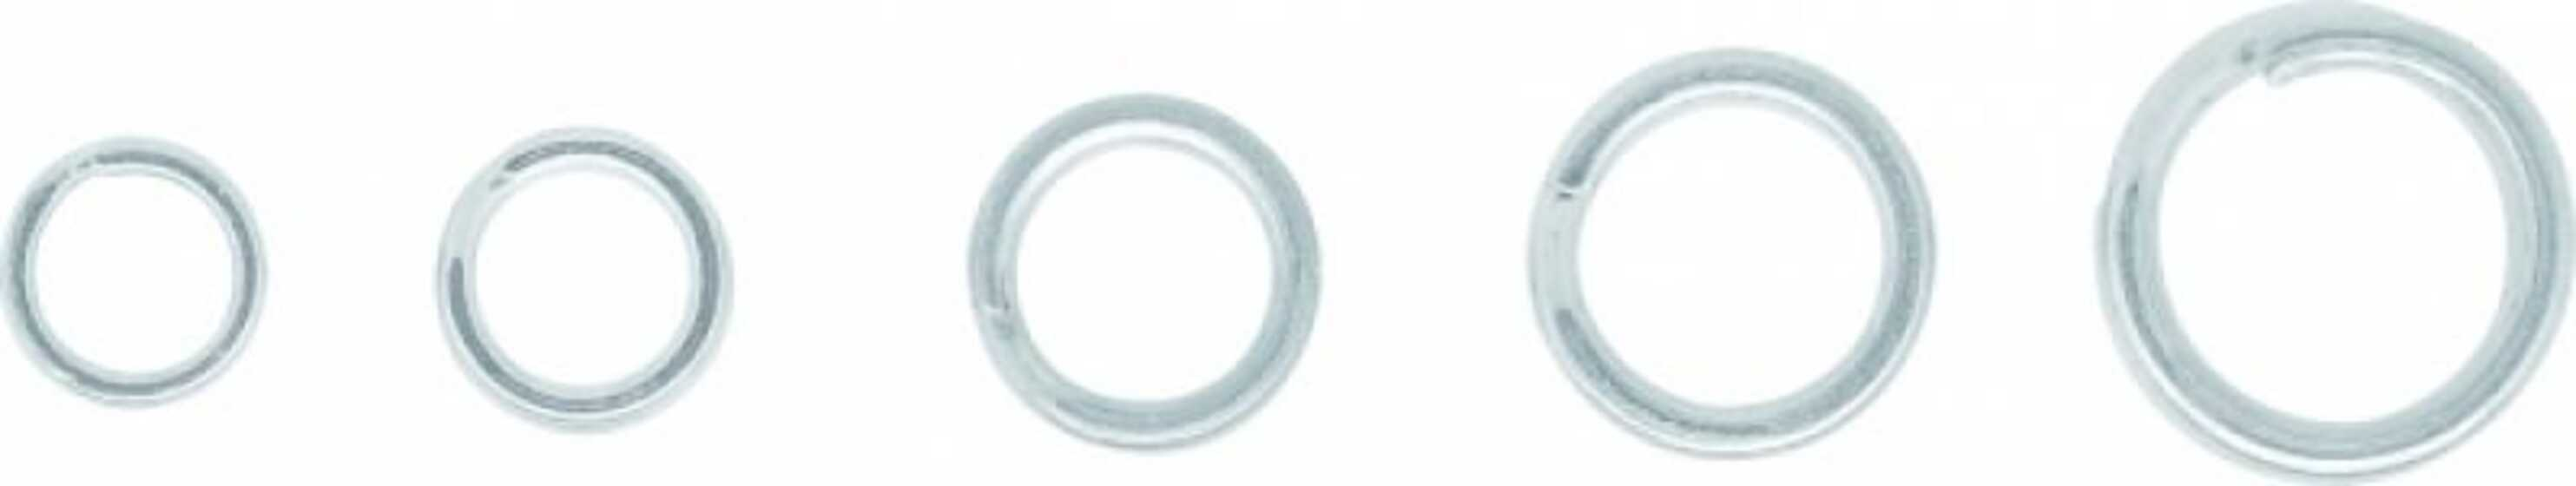 Pezon - Michel Split Ring